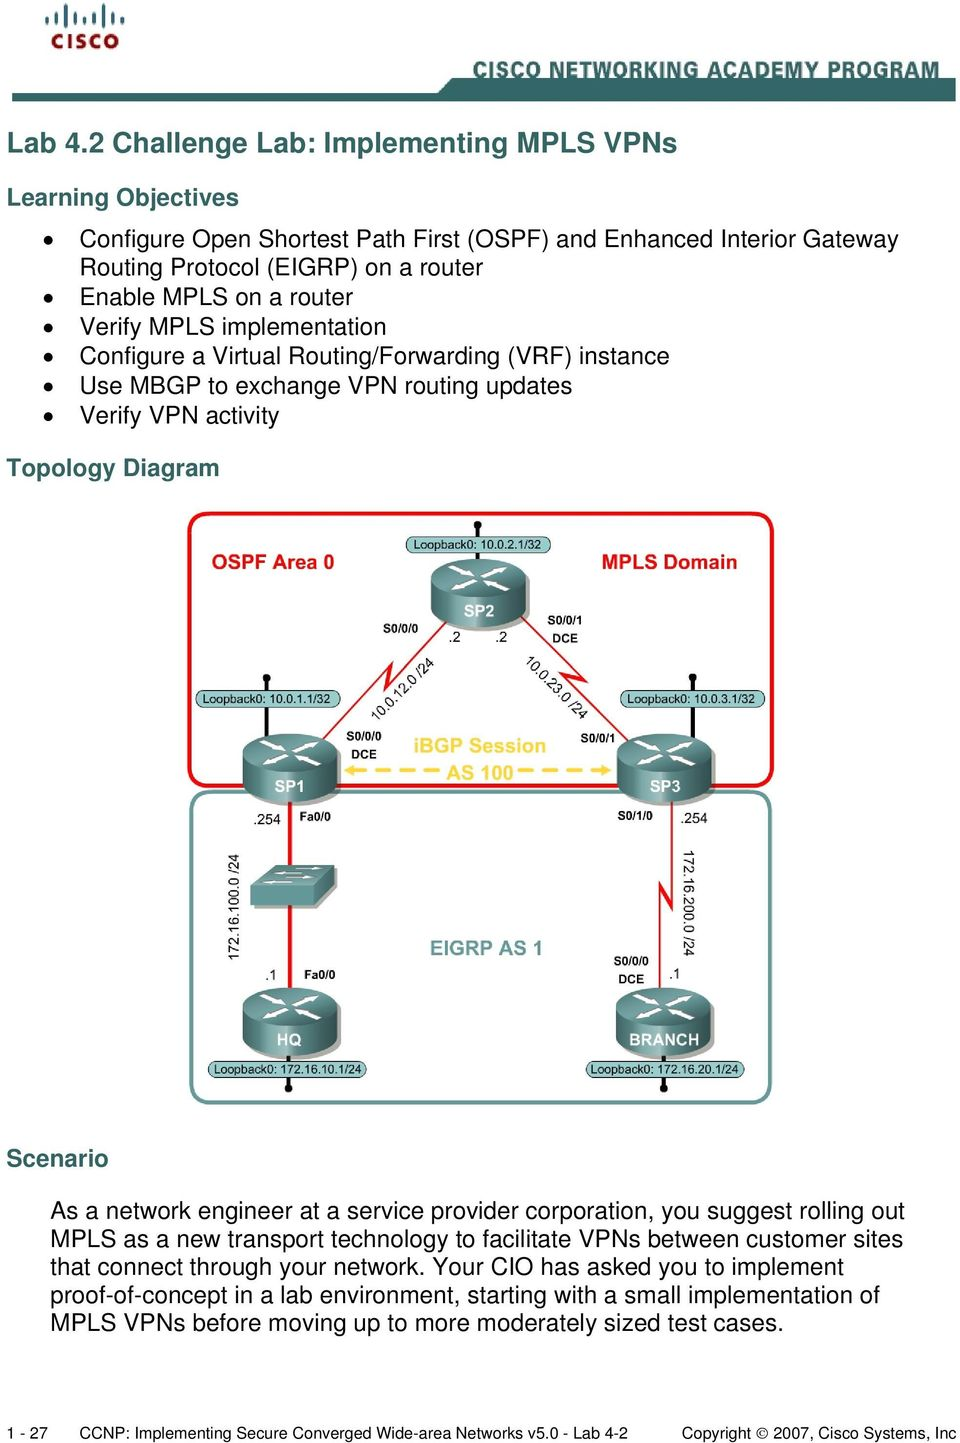 MPLS implementation Configure a Virtual Routing/Forwarding (VRF) instance Use MBGP to exchange VPN routing updates Verify VPN activity Topology Diagram Scenario As a network engineer at a service